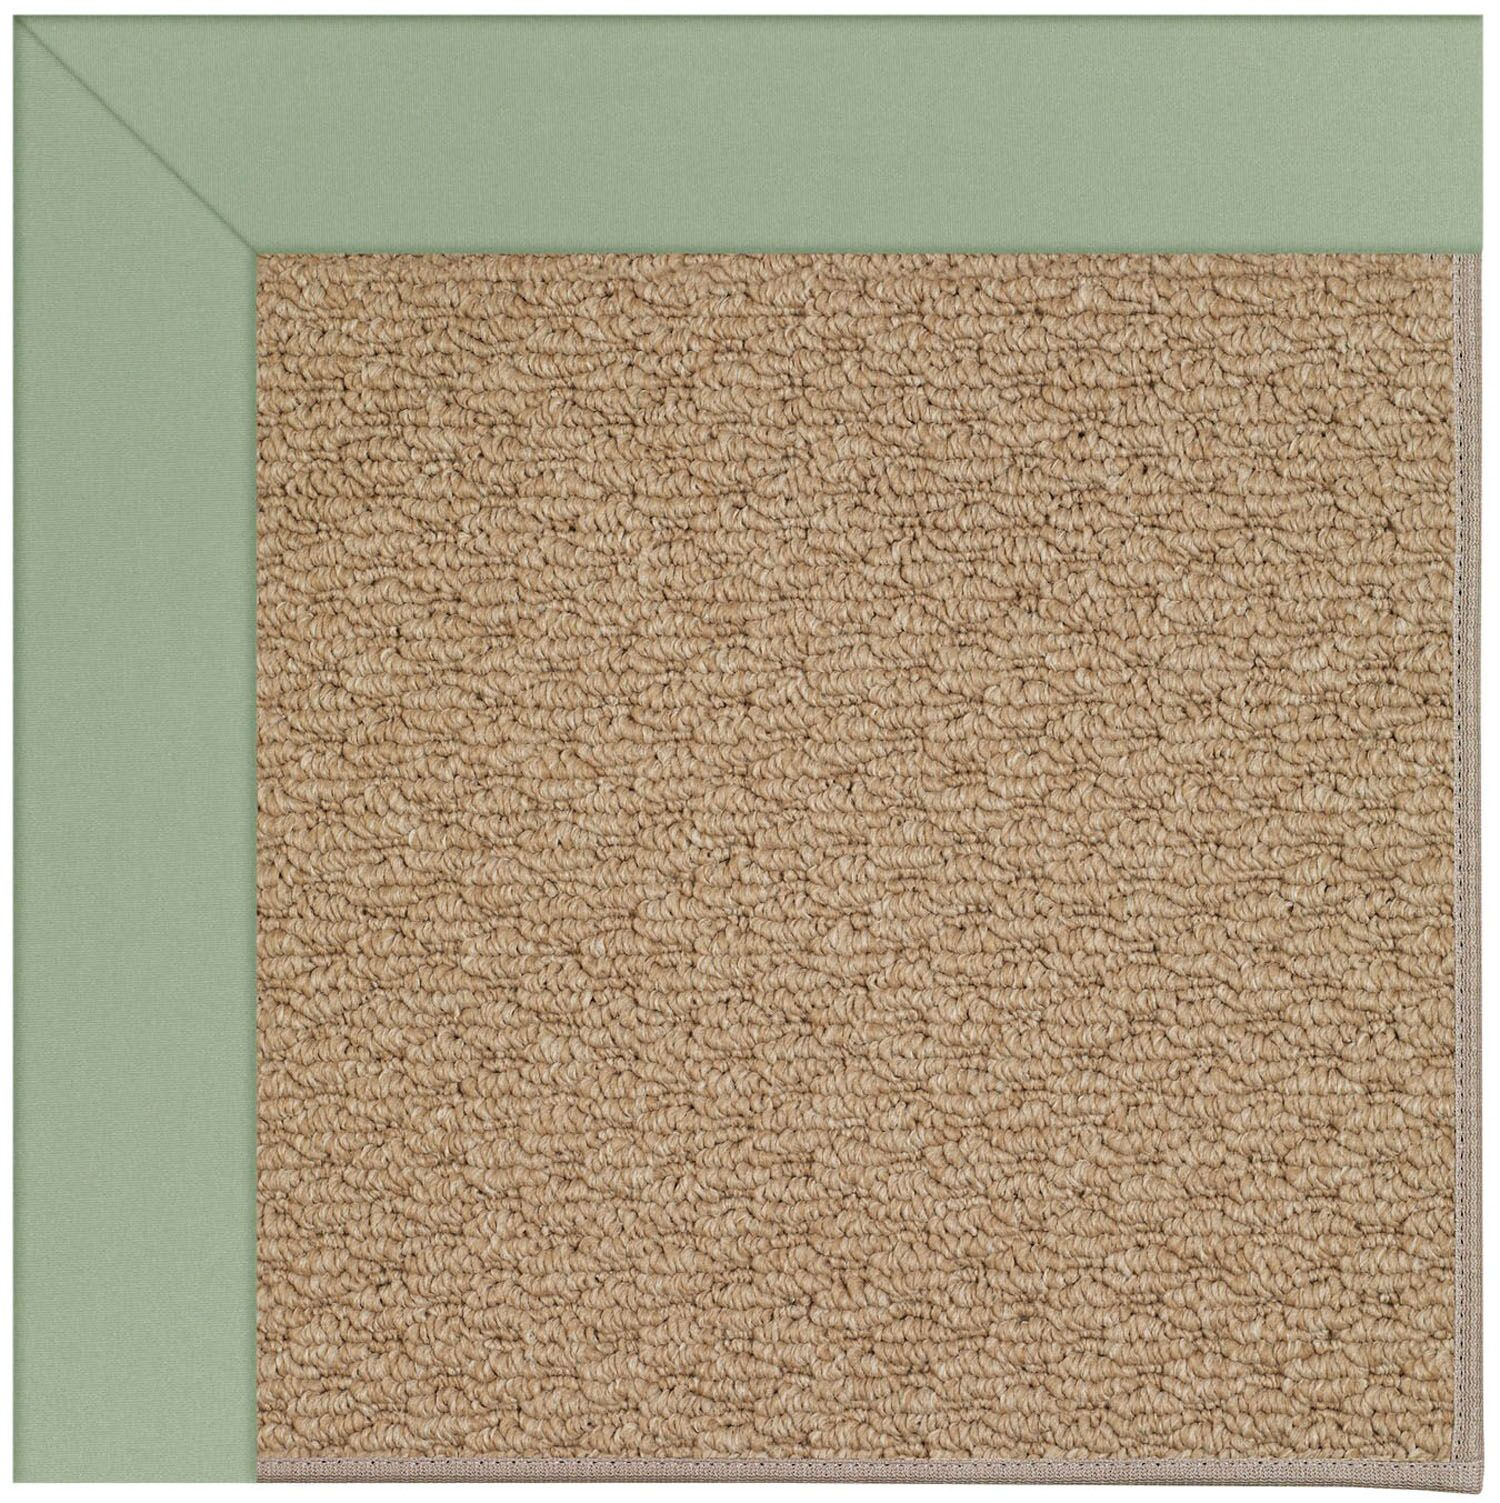 Lisle Machine Tufted Light Jade/Brown Indoor/Outdoor Area Rug Rug Size: Rectangle 10' x 14'